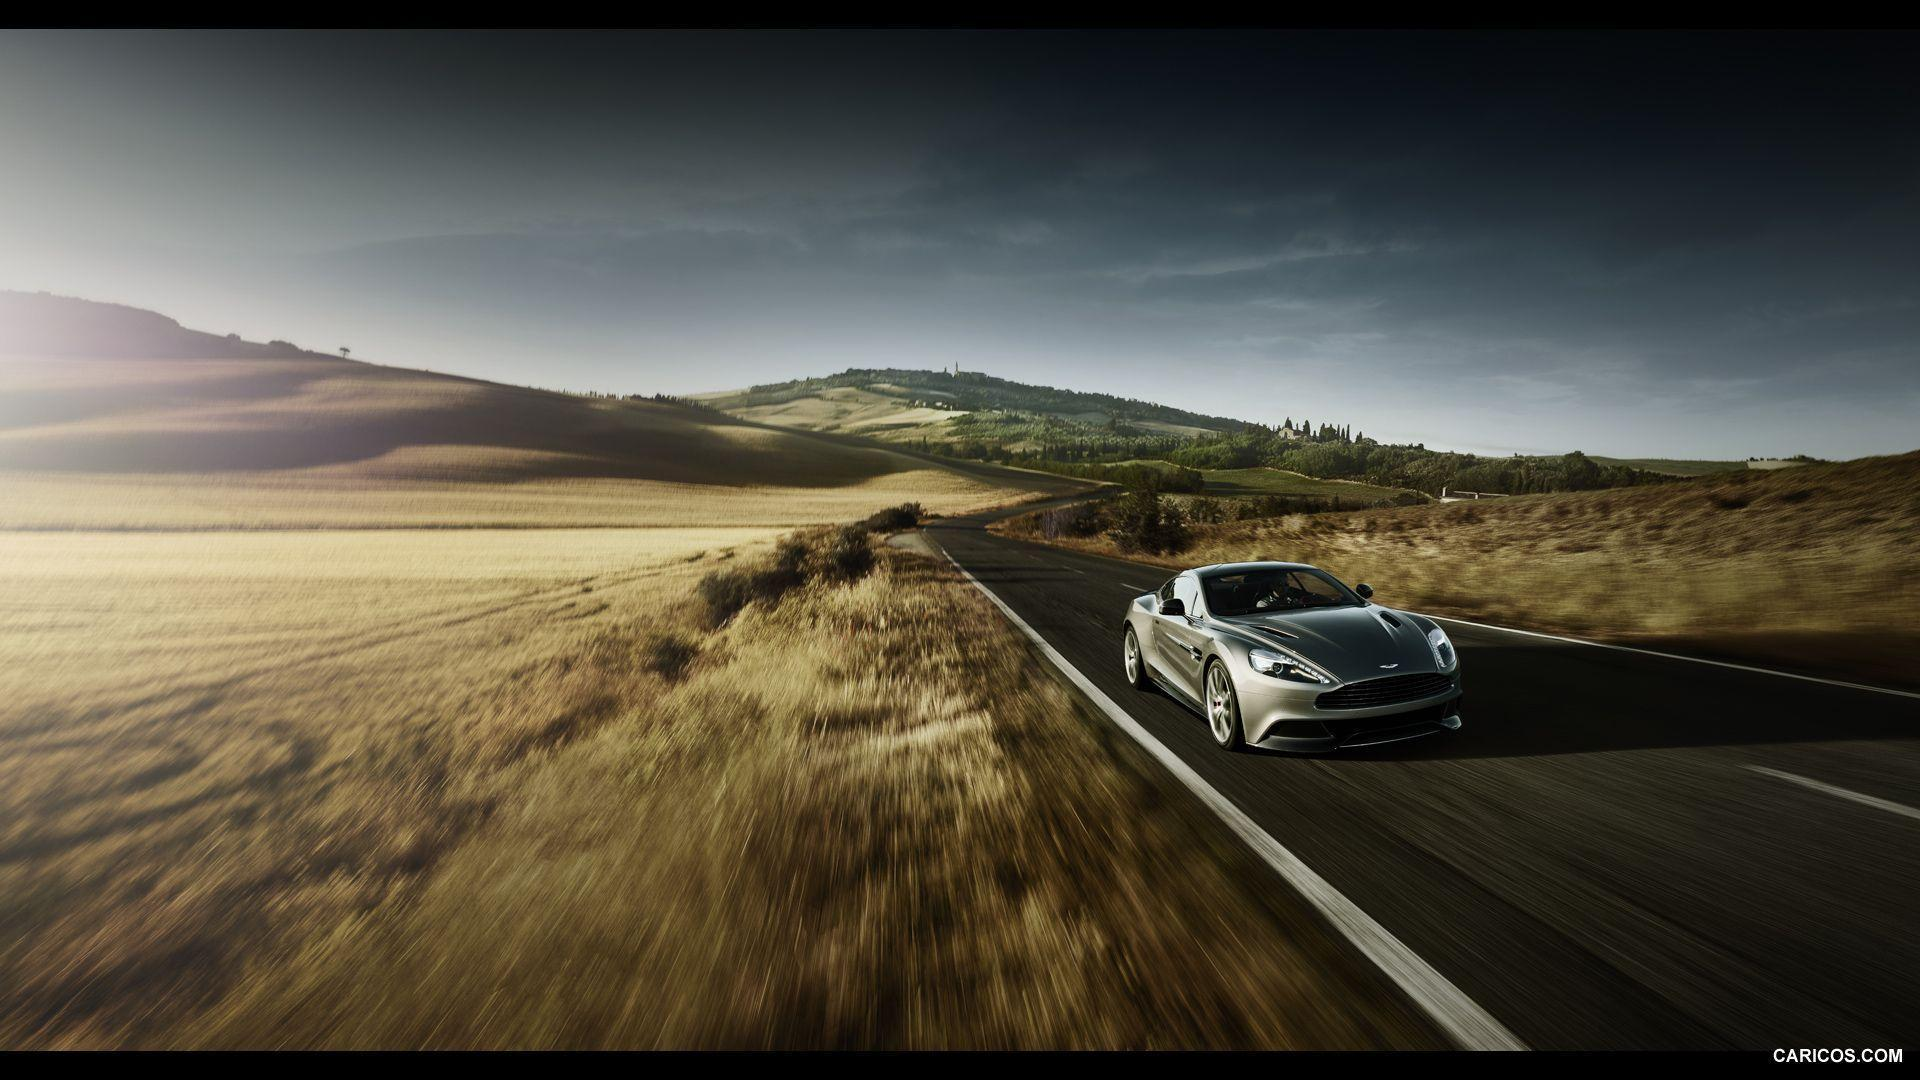 2013 Aston Martin DB9 Wallpapers